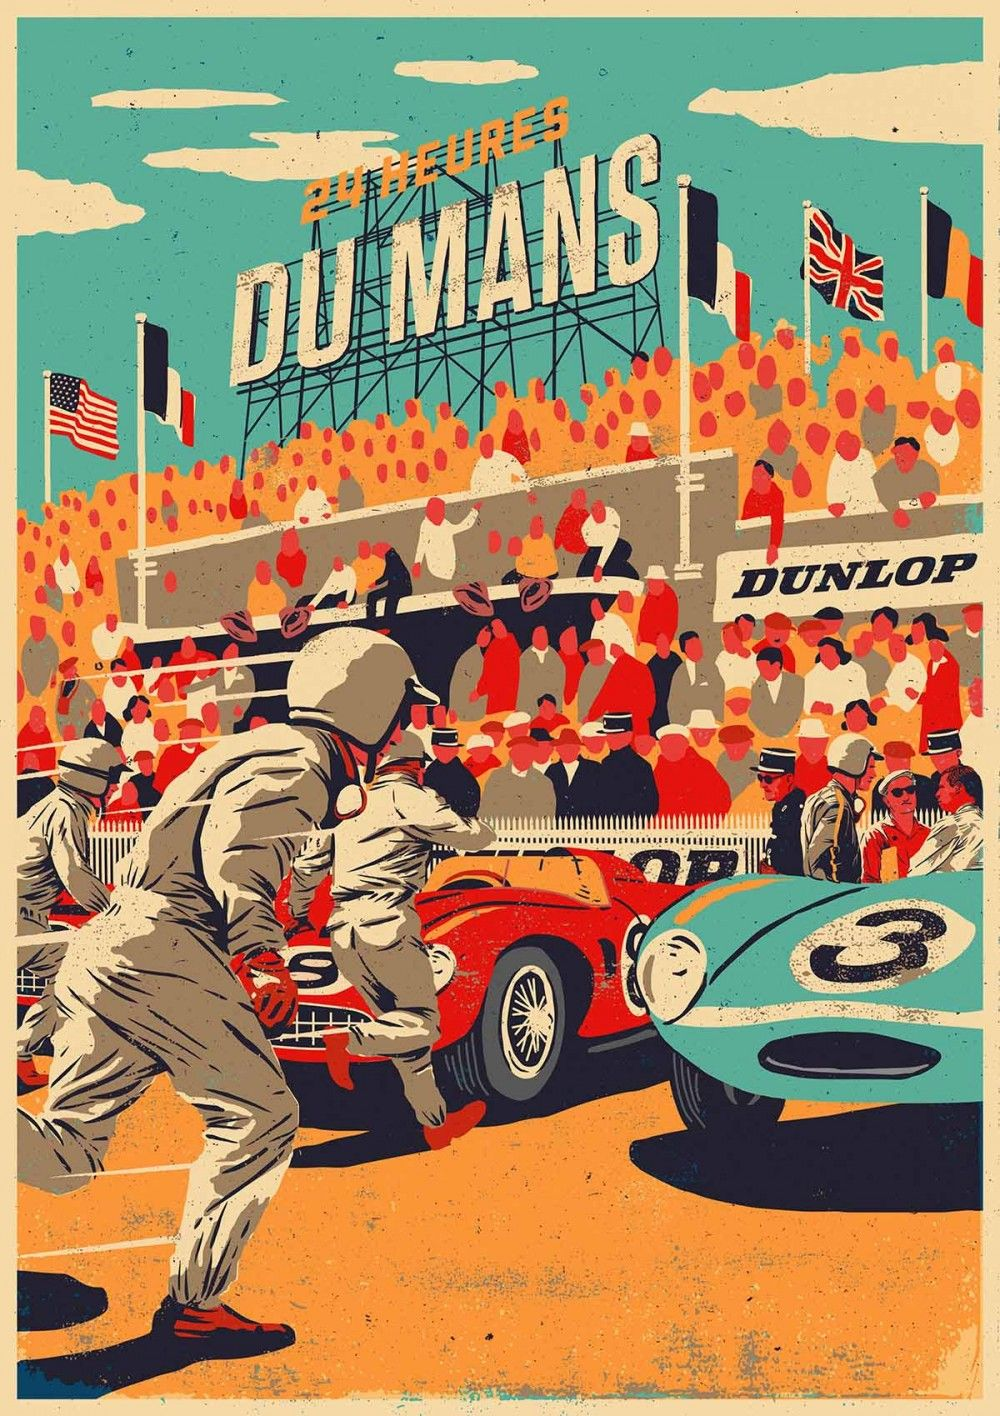 dunlop le mans 1950 poster le mans pinterest cartelitos le mans y cuadros antiguos. Black Bedroom Furniture Sets. Home Design Ideas